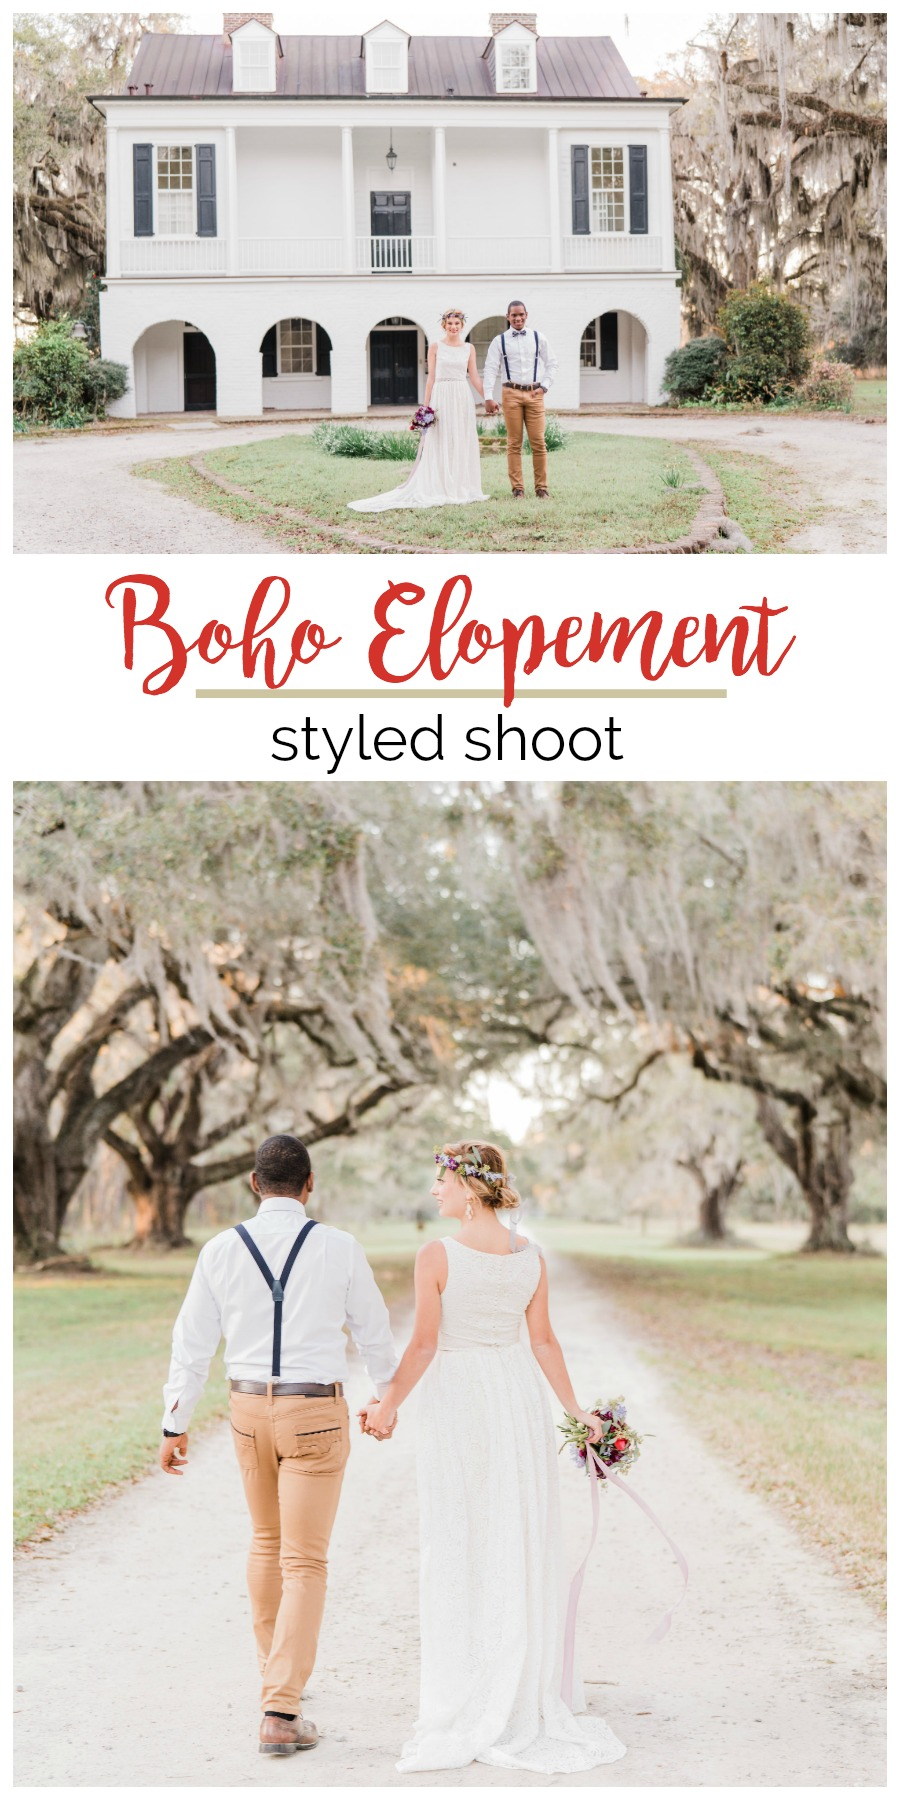 Wedding Inspiration: Boho Elopement Styled Shoot at Grove Plantation House | Palmetto State Weddings | Photos by Kate Dye Photography